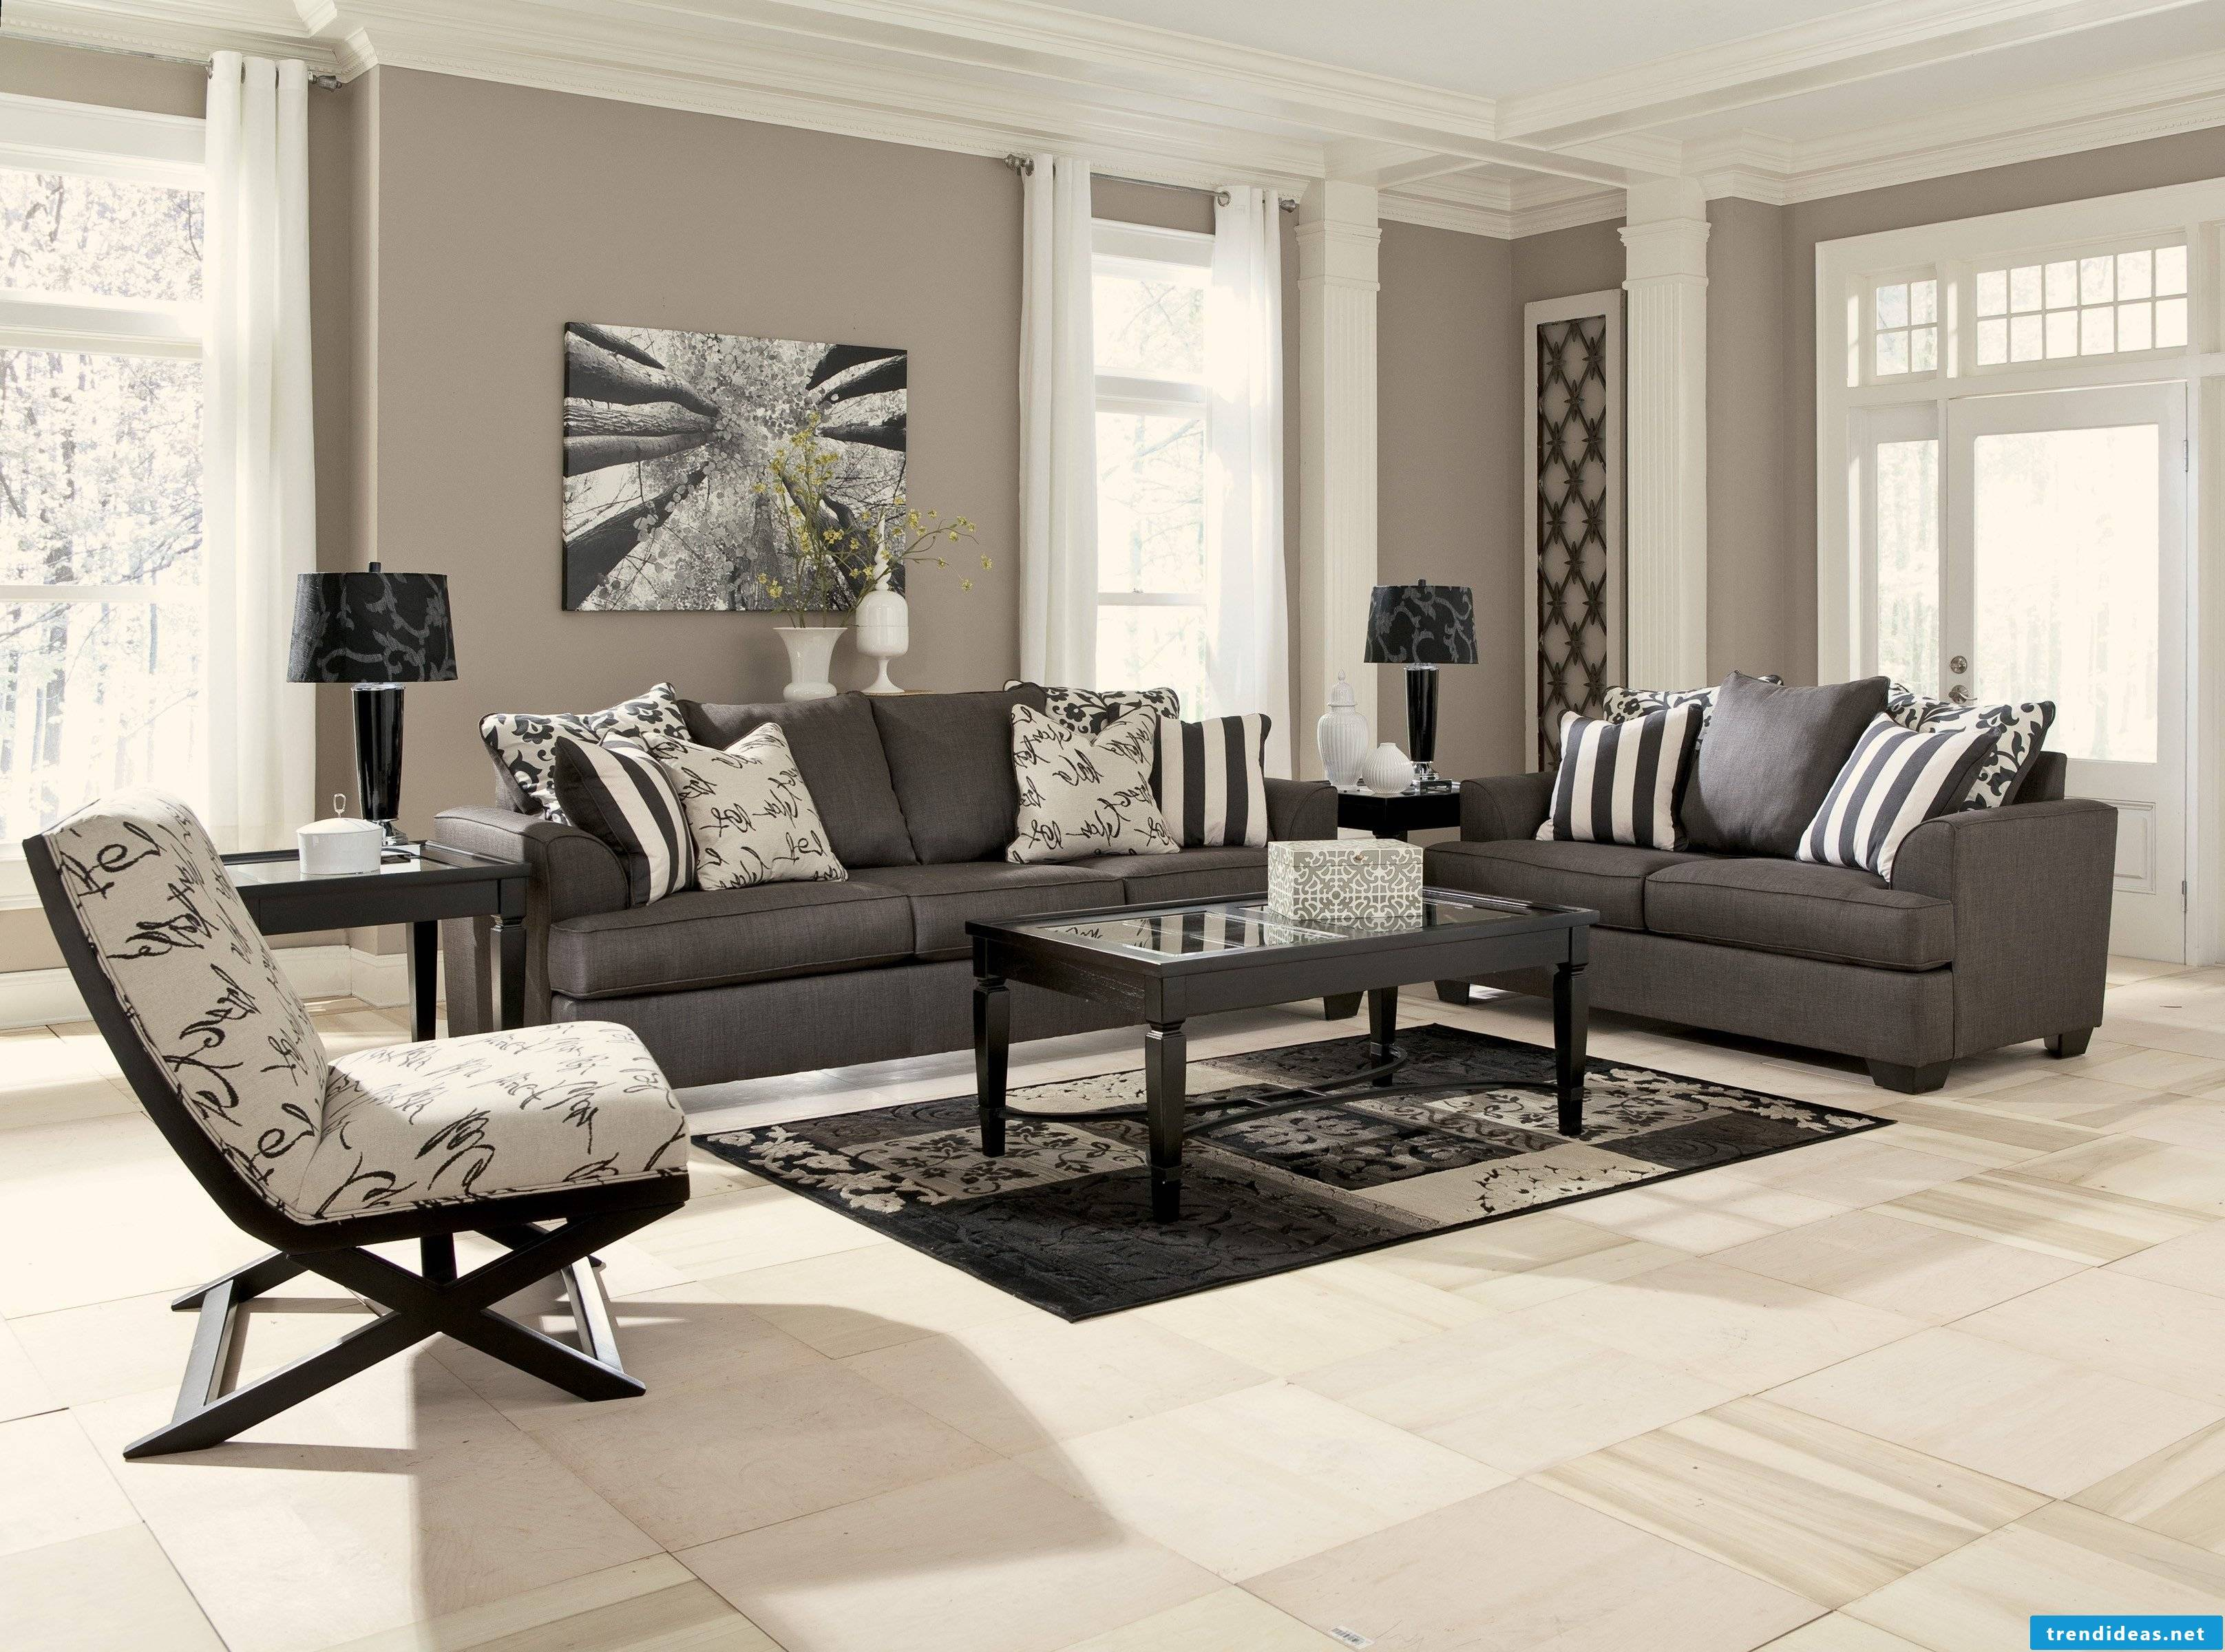 The correct home furnishings according to your answers to the questionnaire